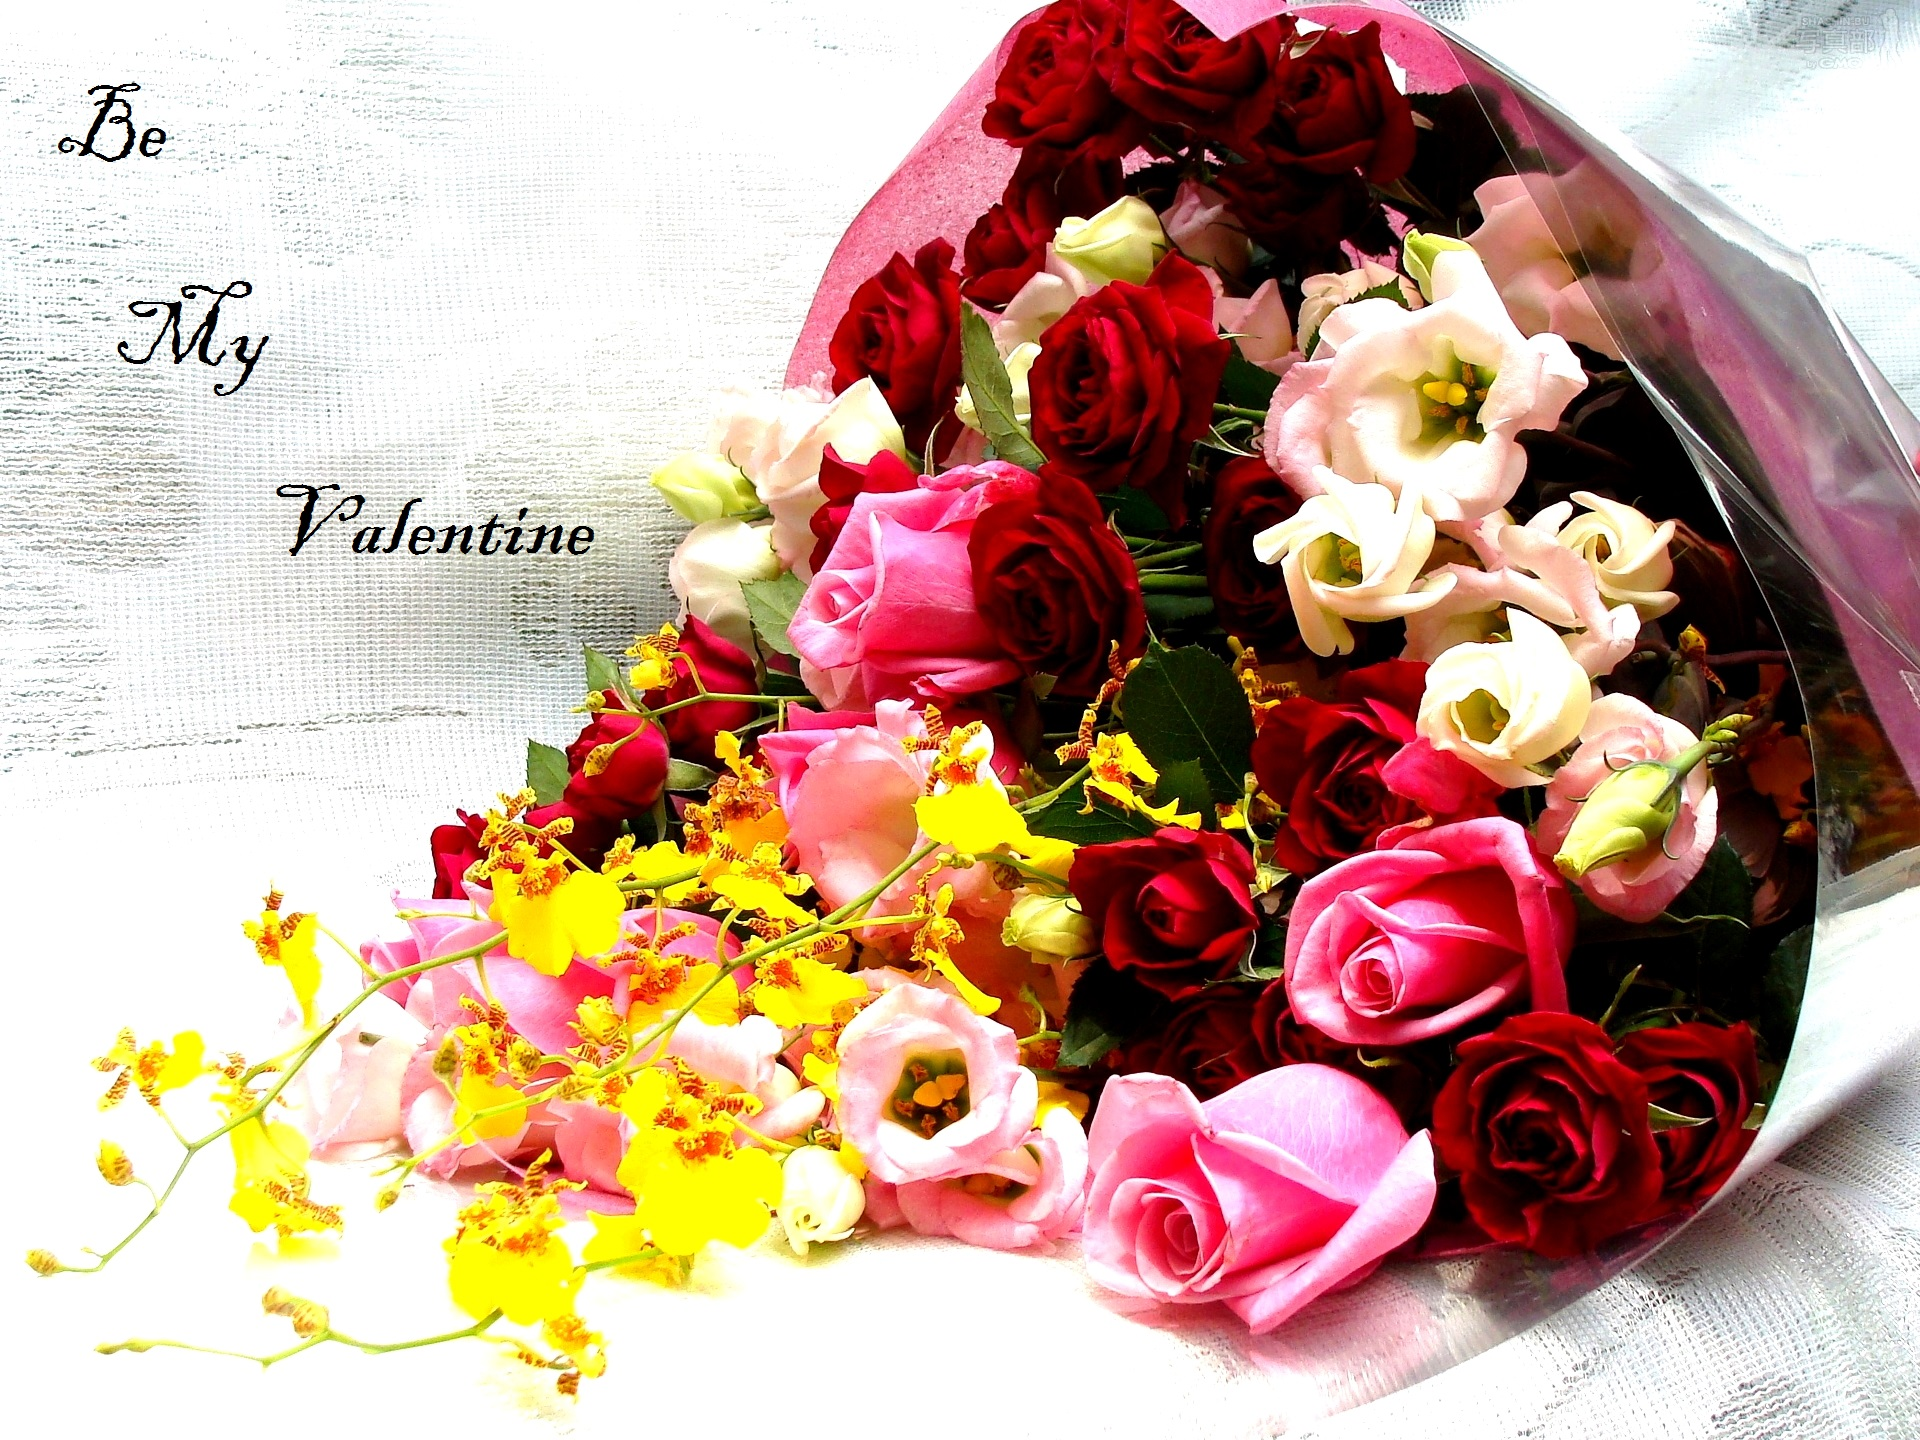 Valentines Day Images For Whatsapp Dp Profile Wallpapers Free